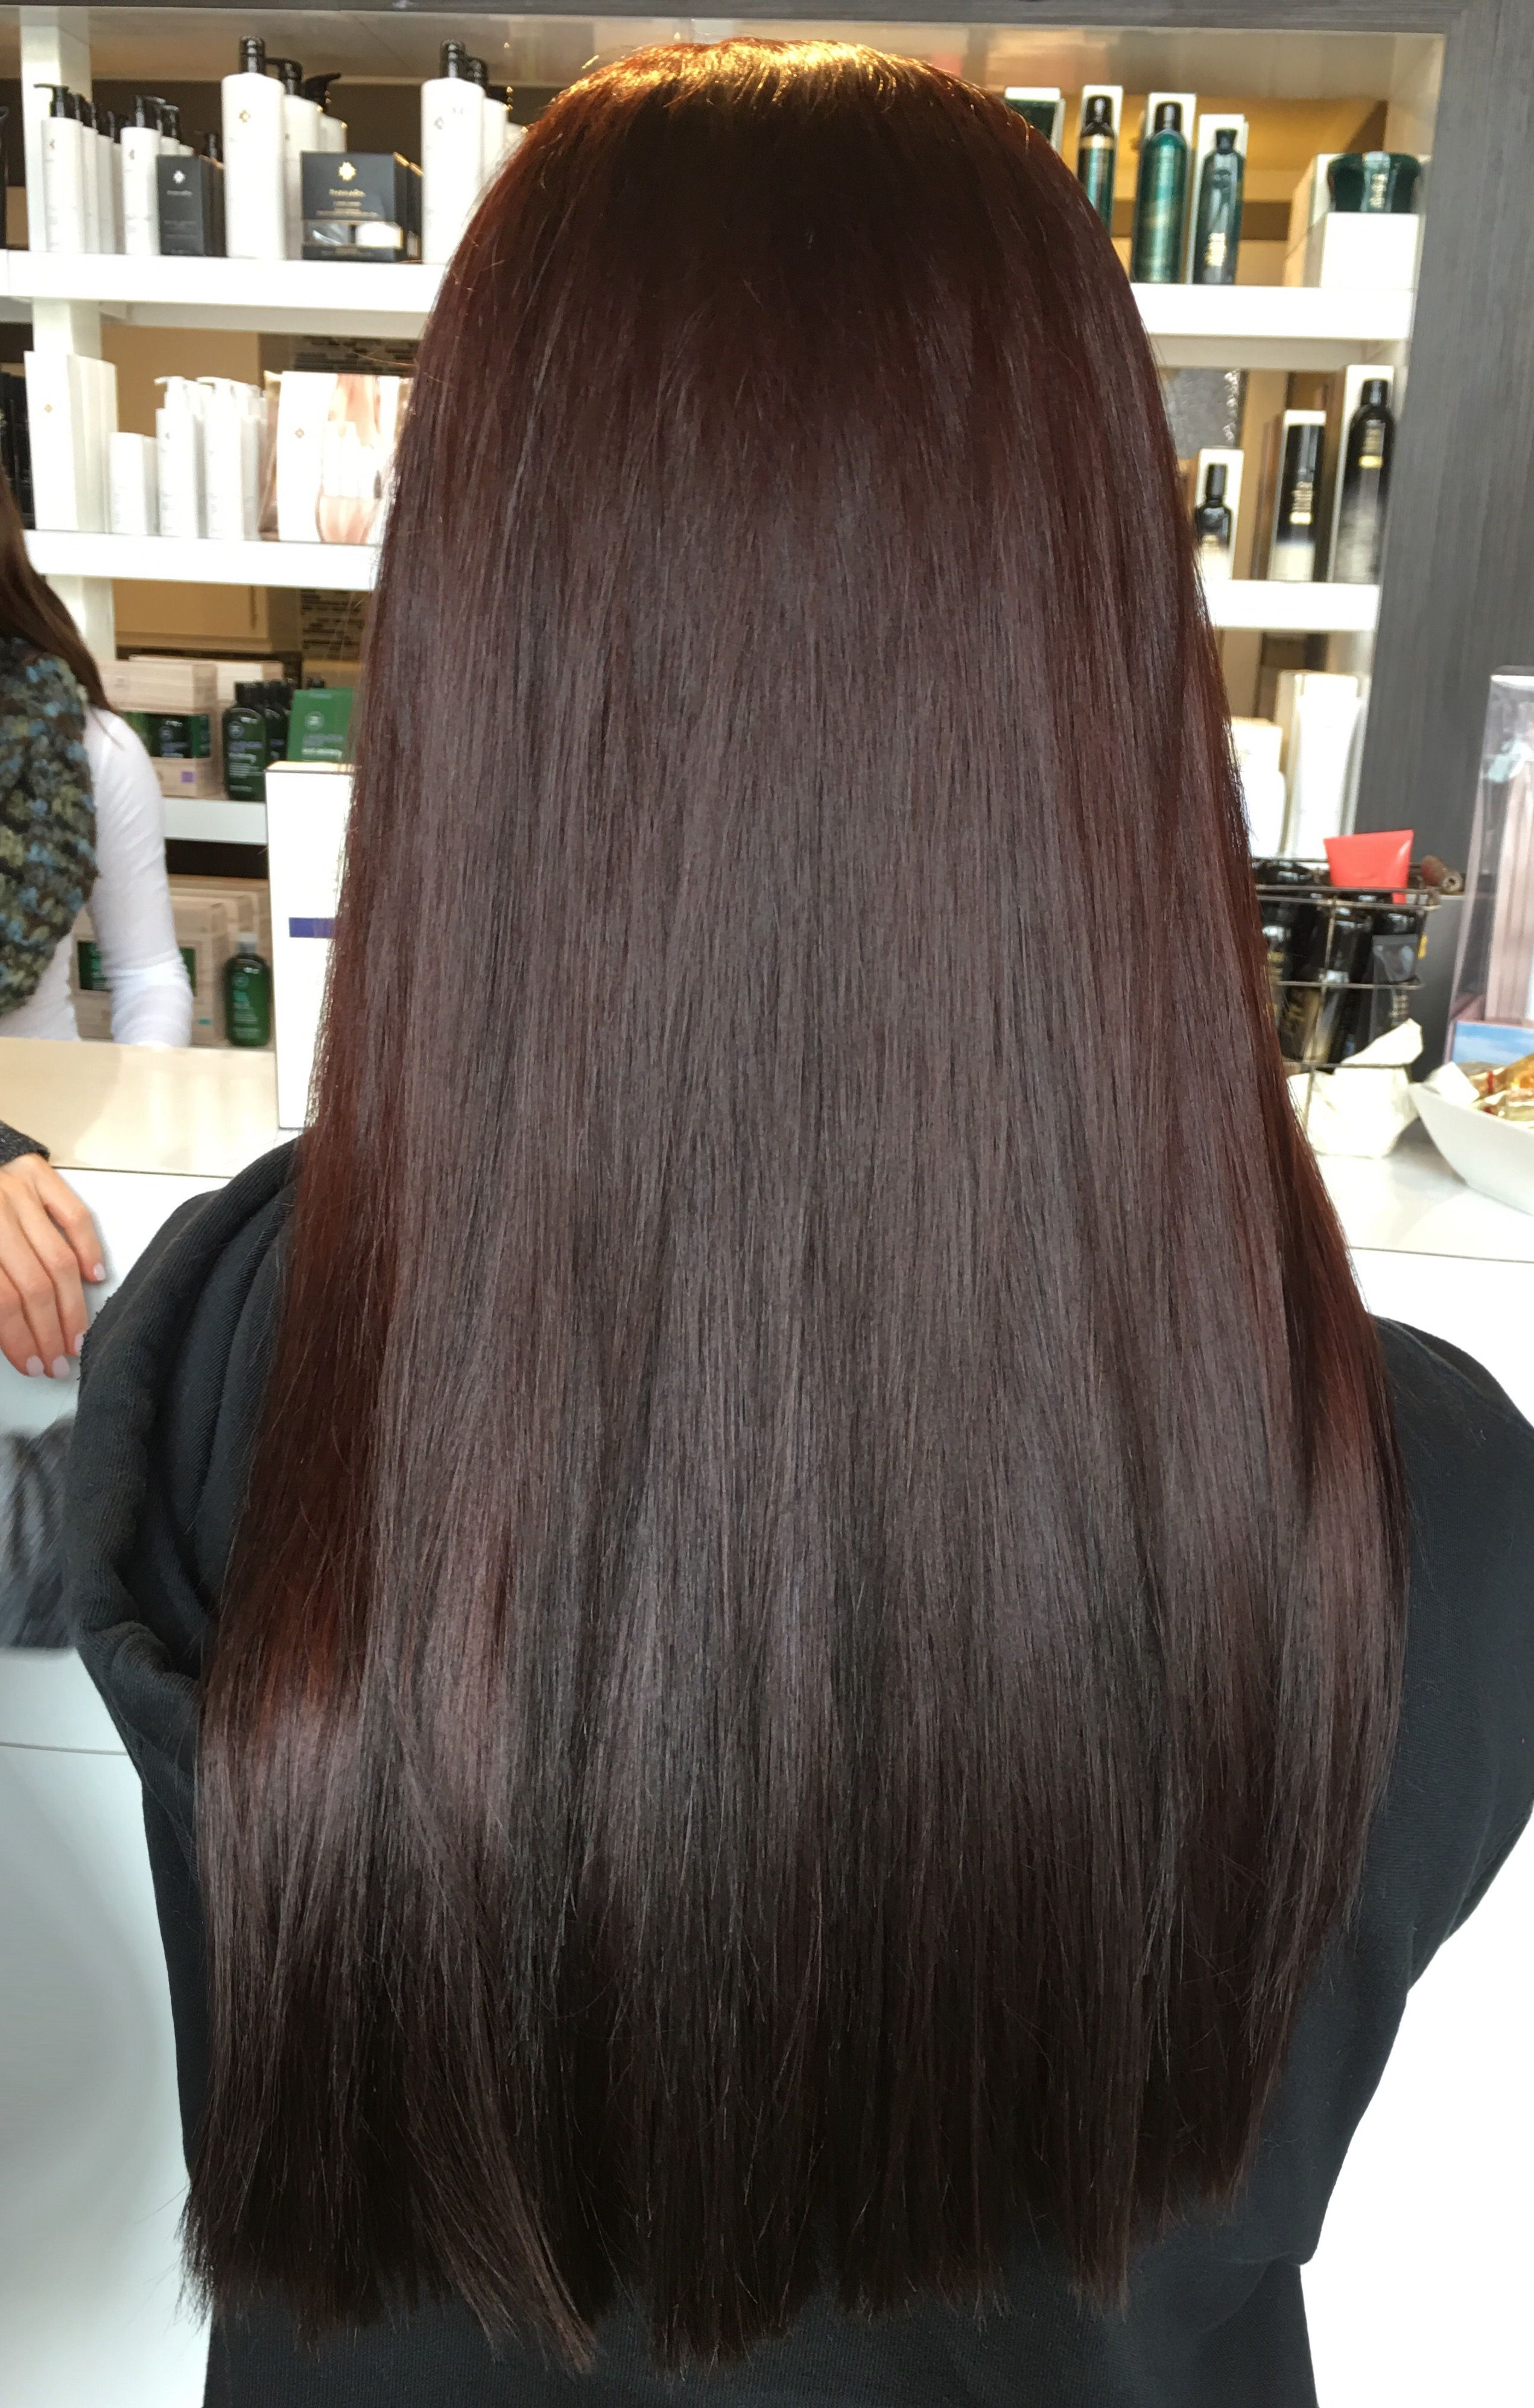 Deep red brown hair salon studiobe paul mitchell fun ideas